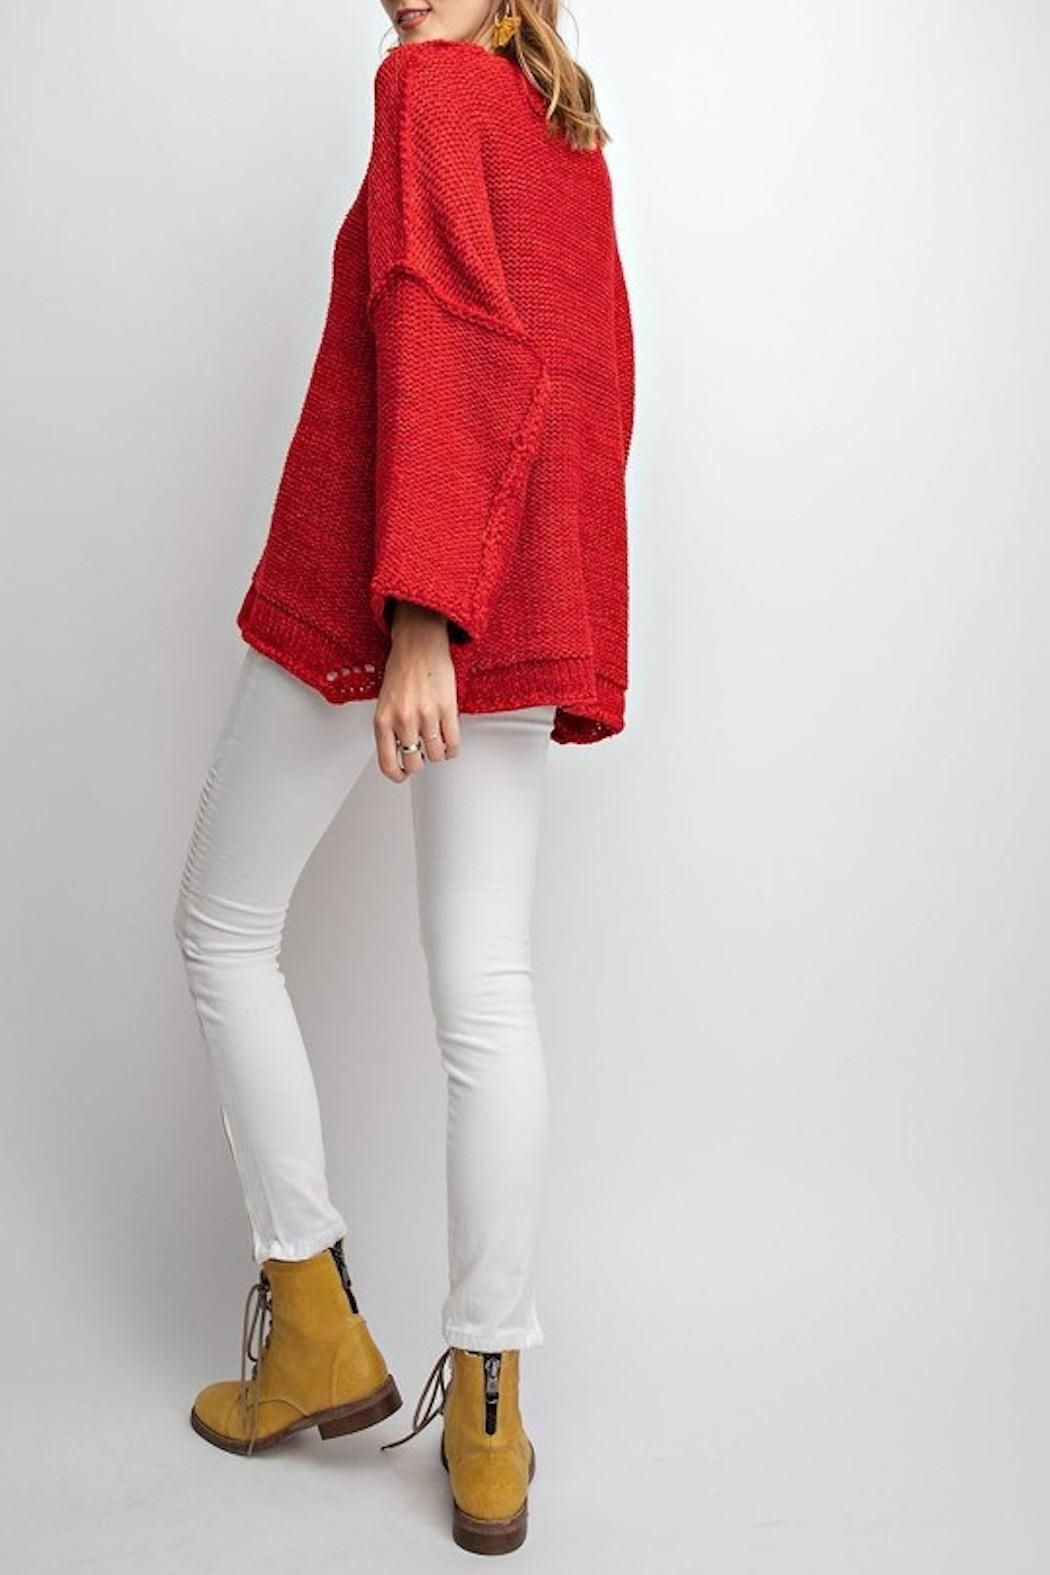 easel Red Chunky Sweater - Side Cropped Image